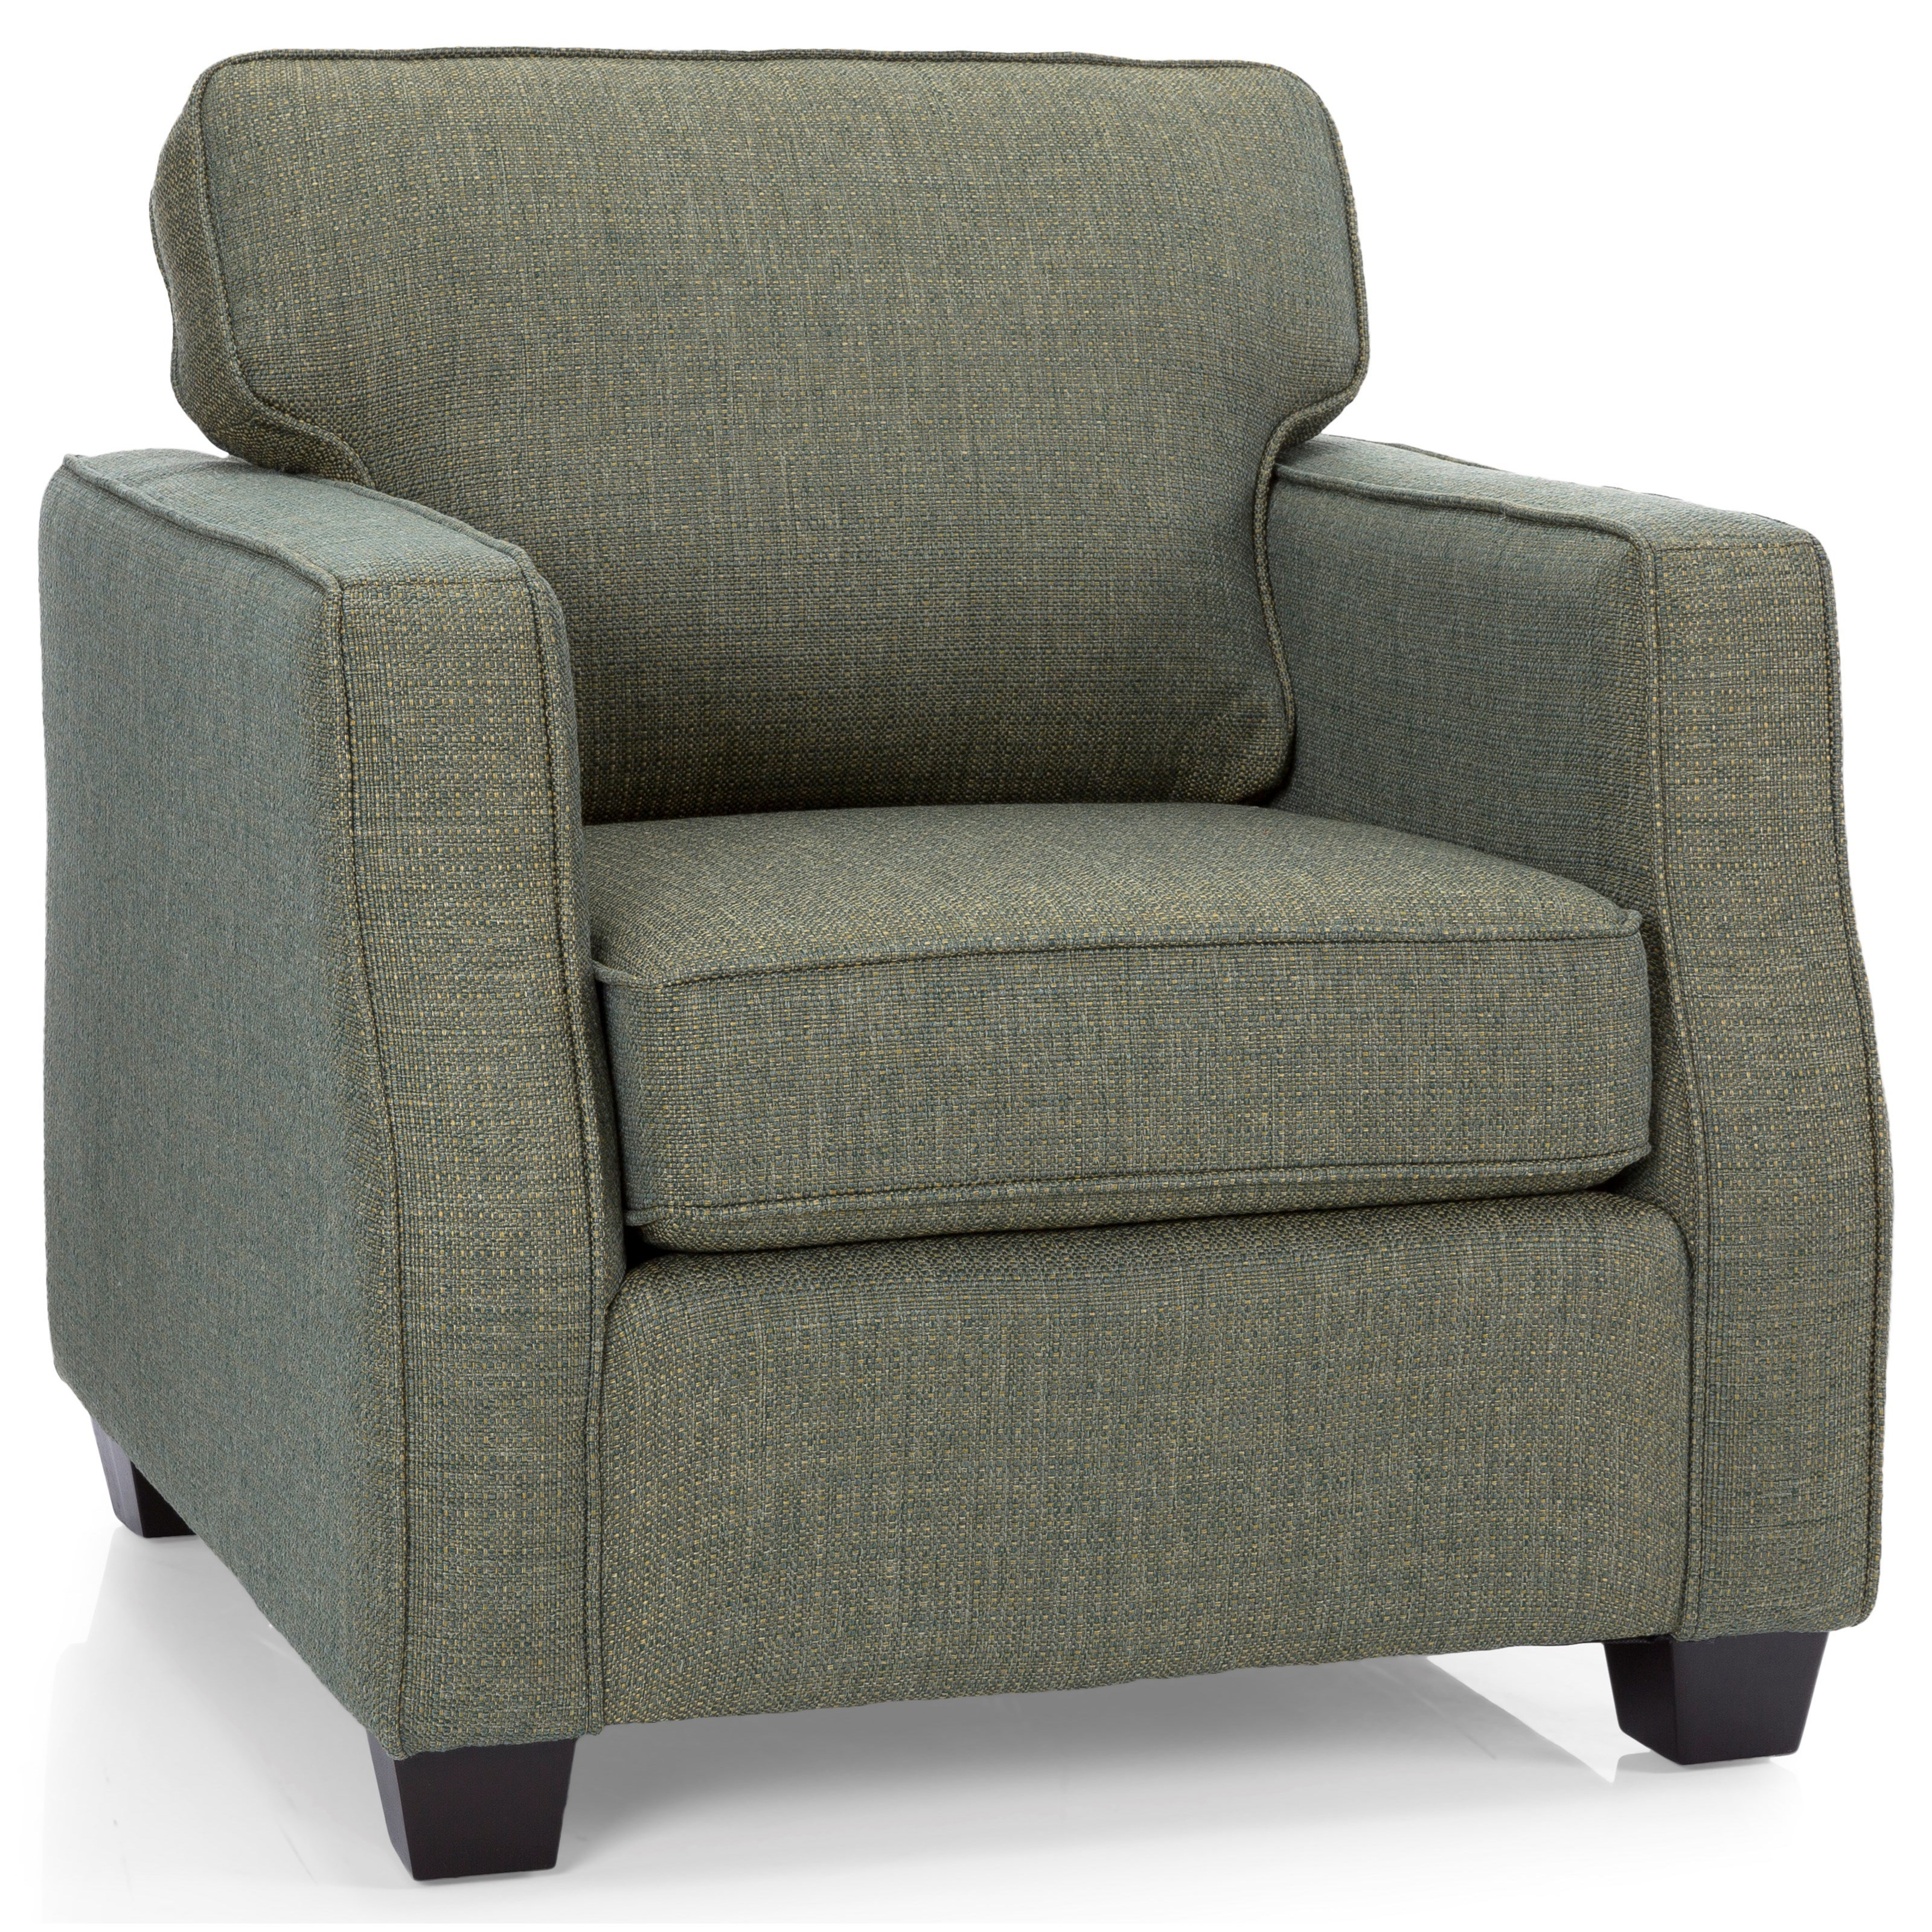 2570 Chair by Decor-Rest at Rooms for Less